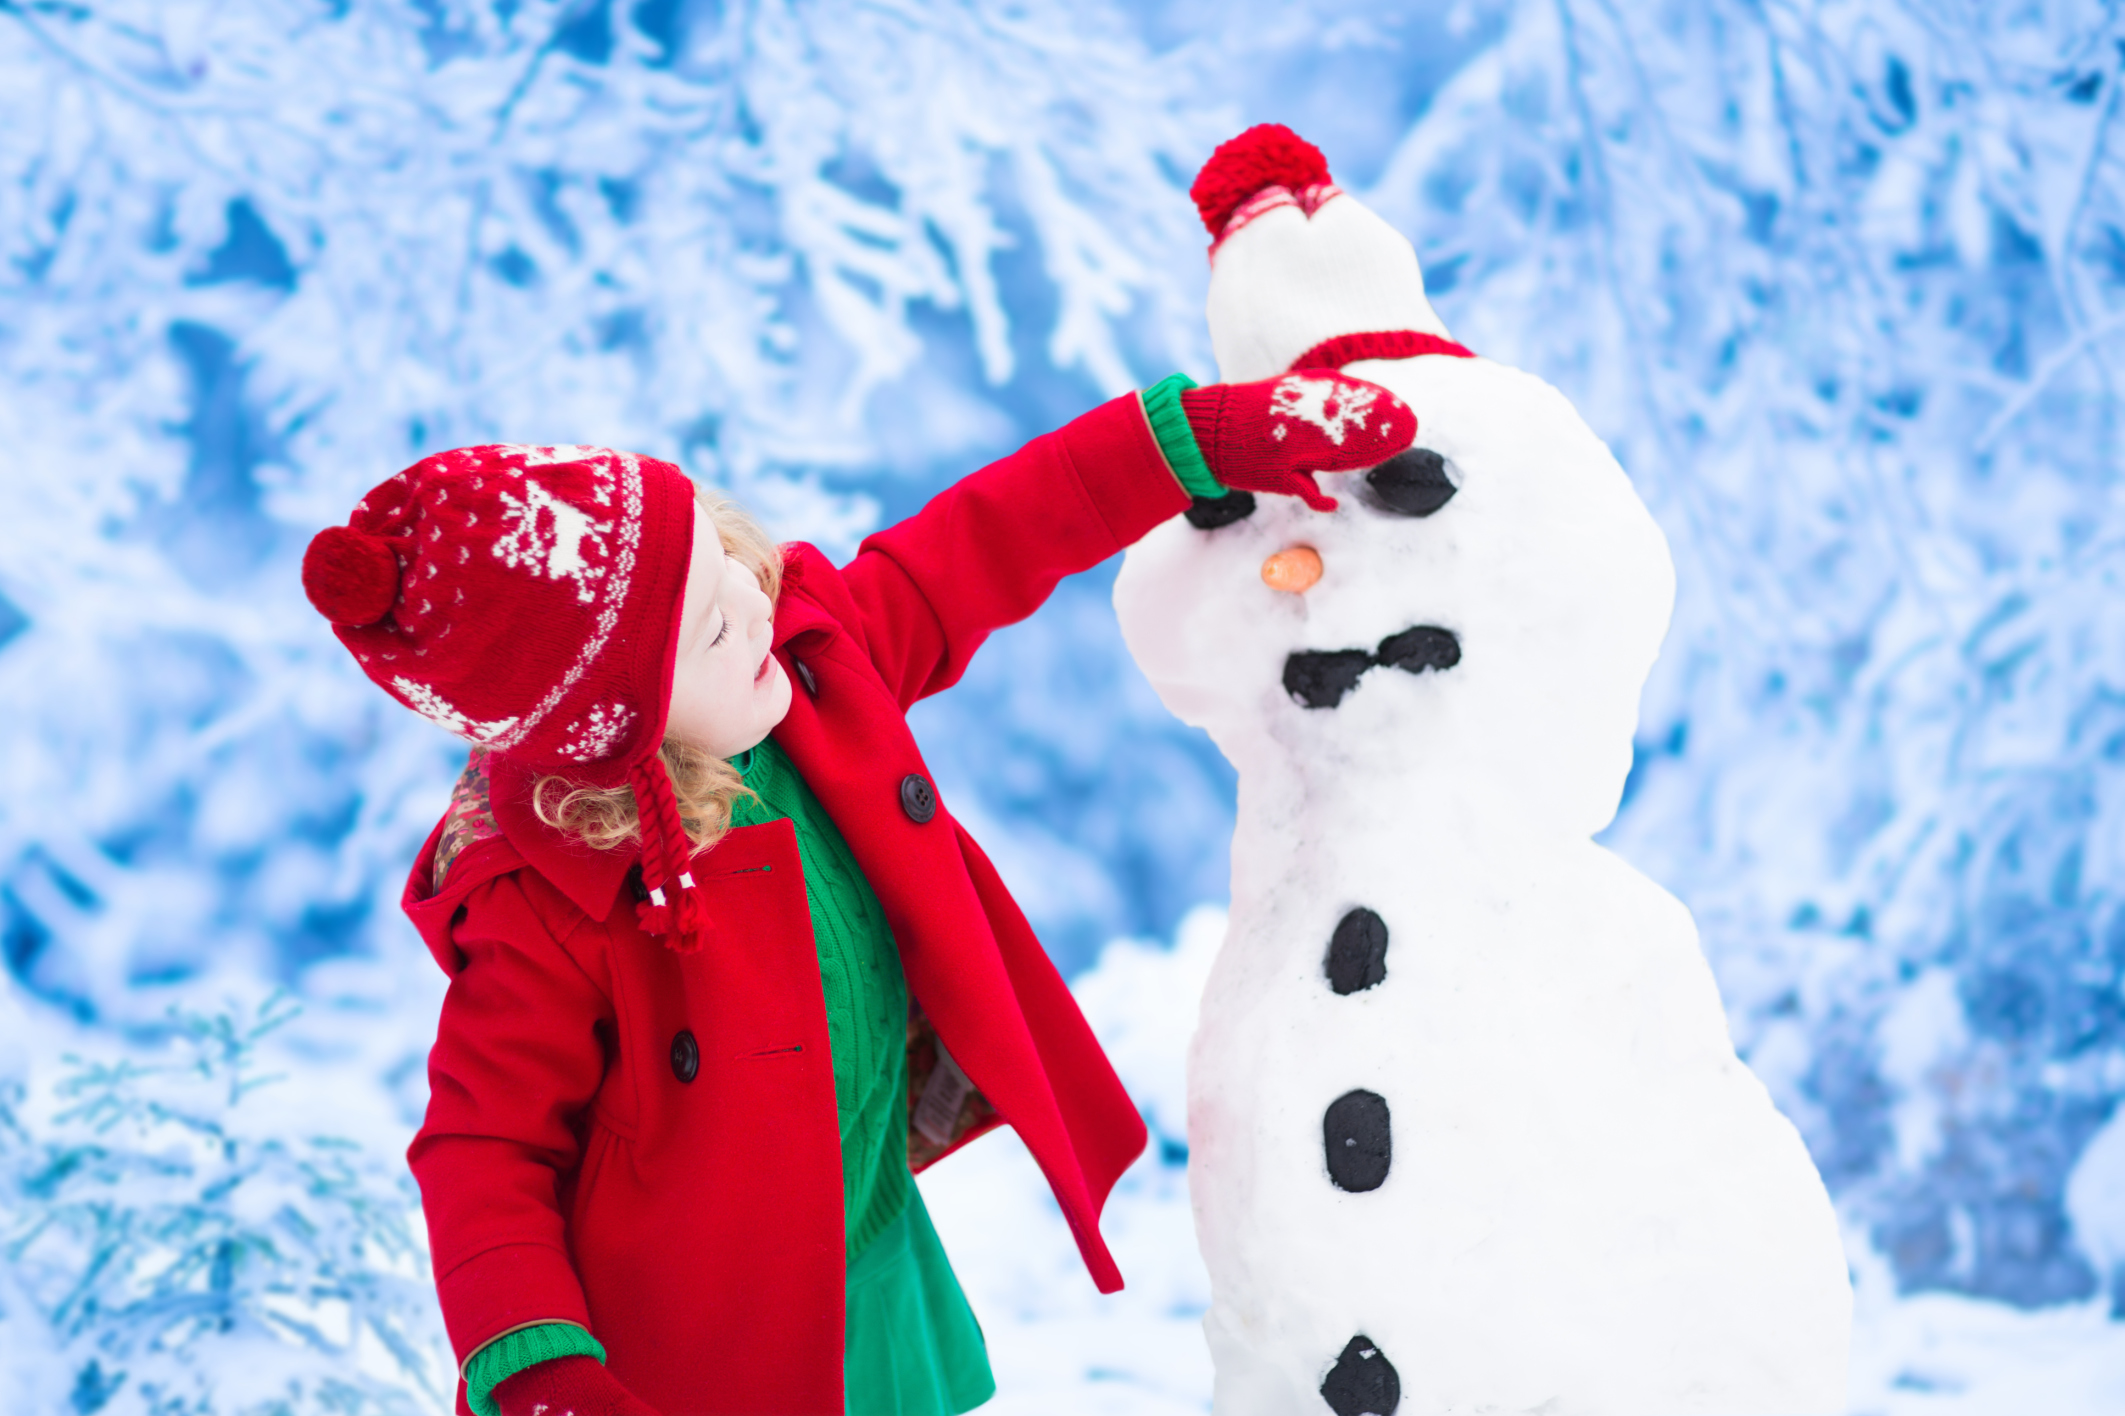 ThinkstockPhotos 487925814 10 Winter Photo Ideas That The Whole Family Can Enjoy